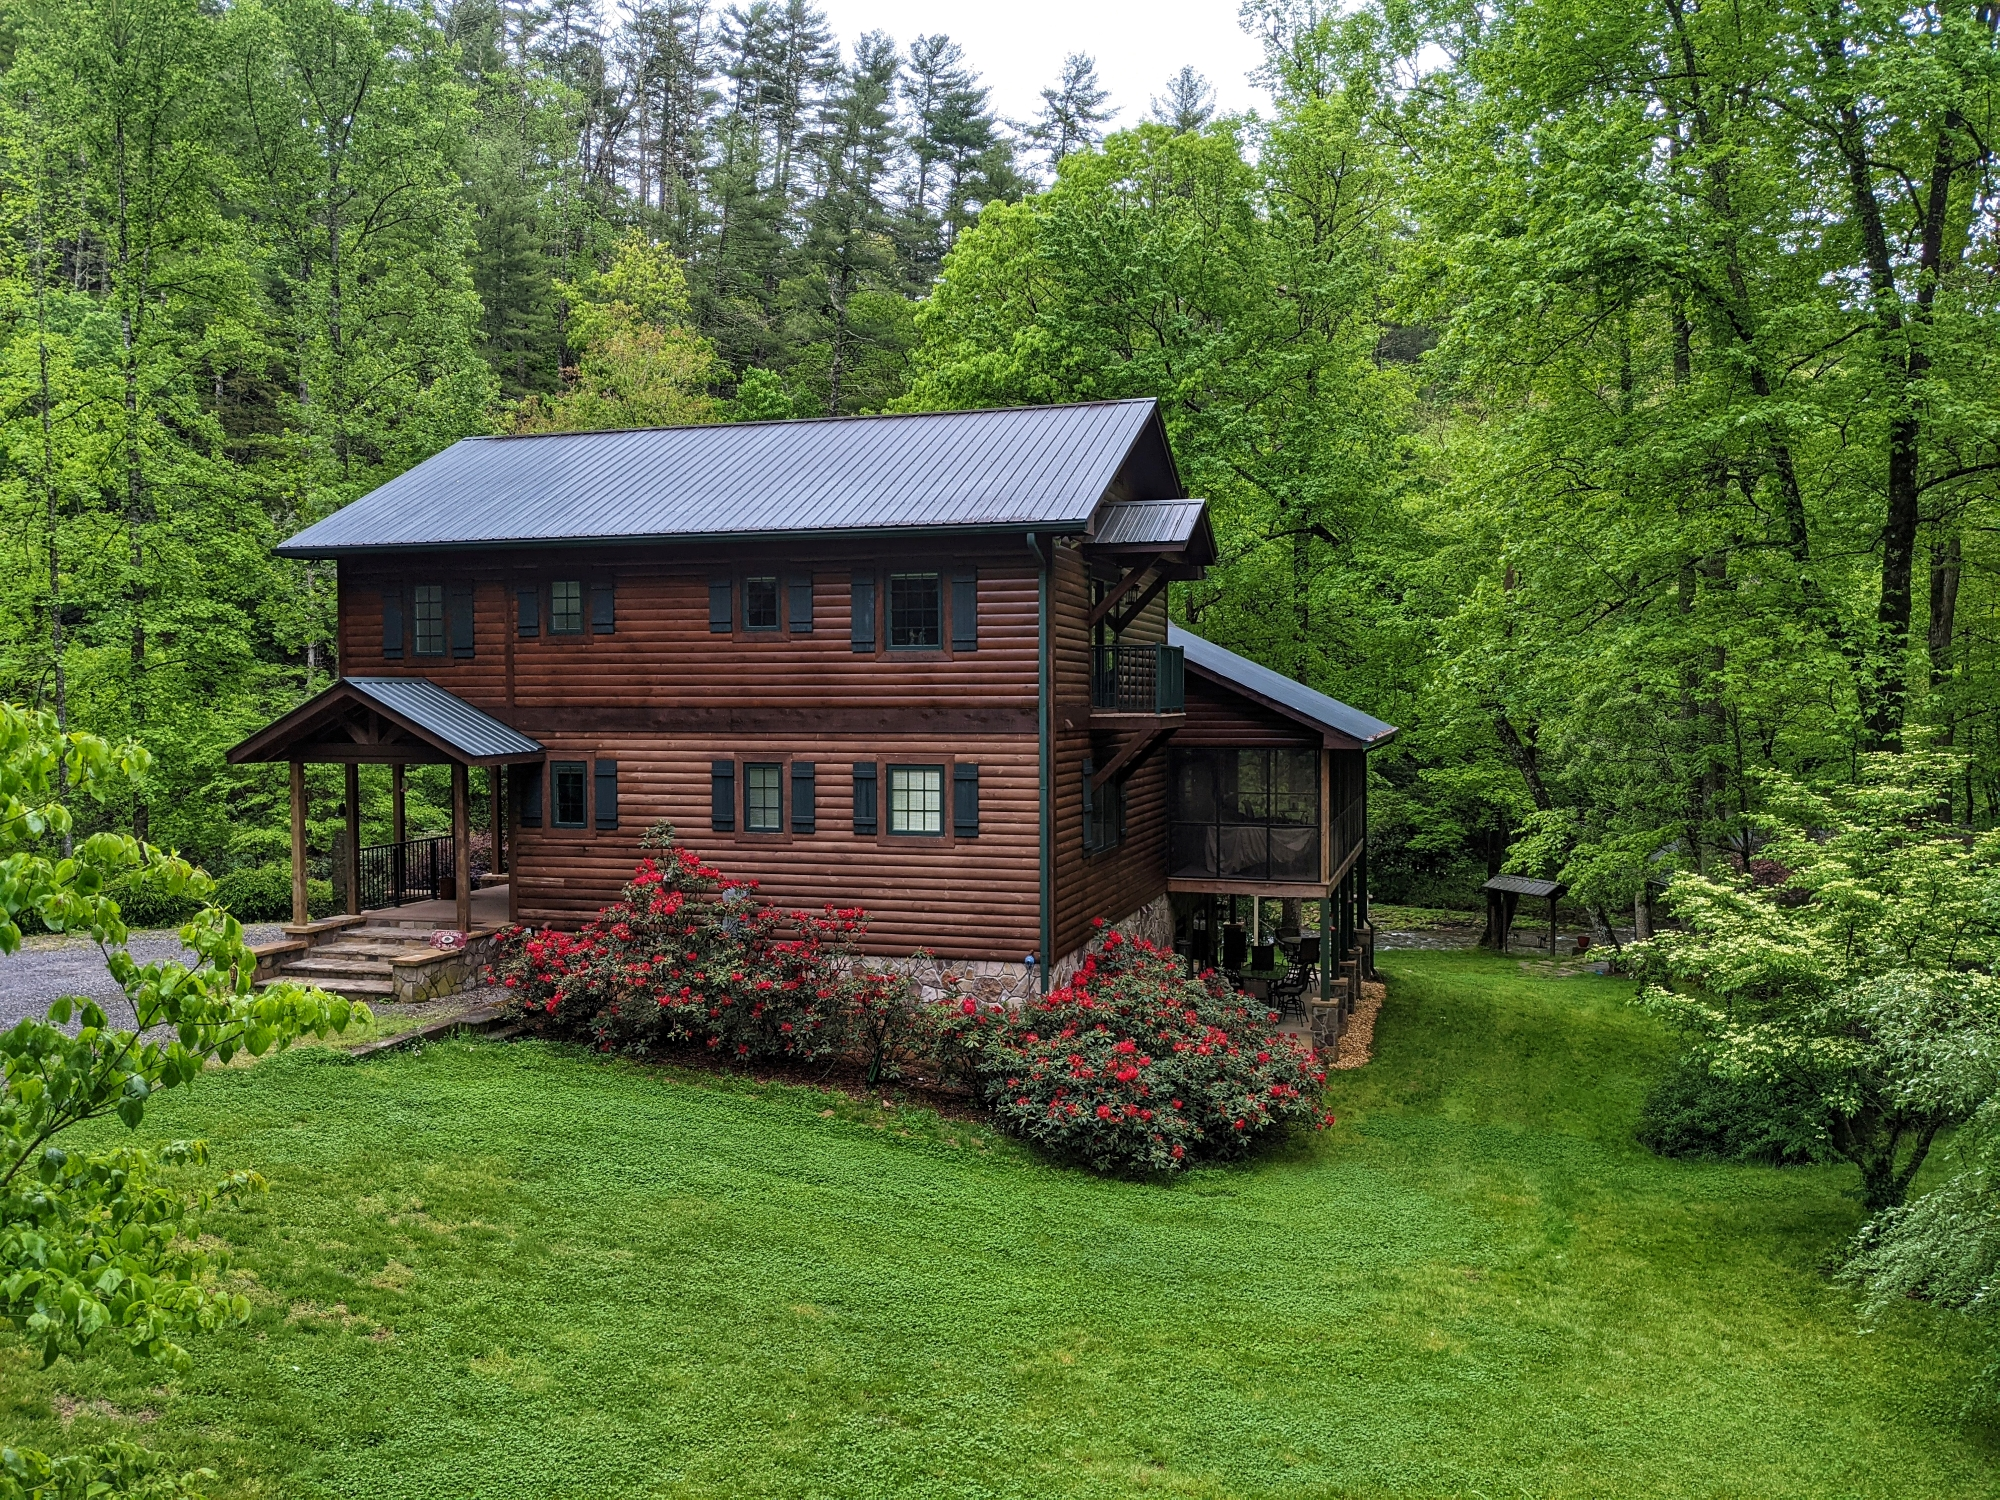 Home with trees surrounding it in North Carolina